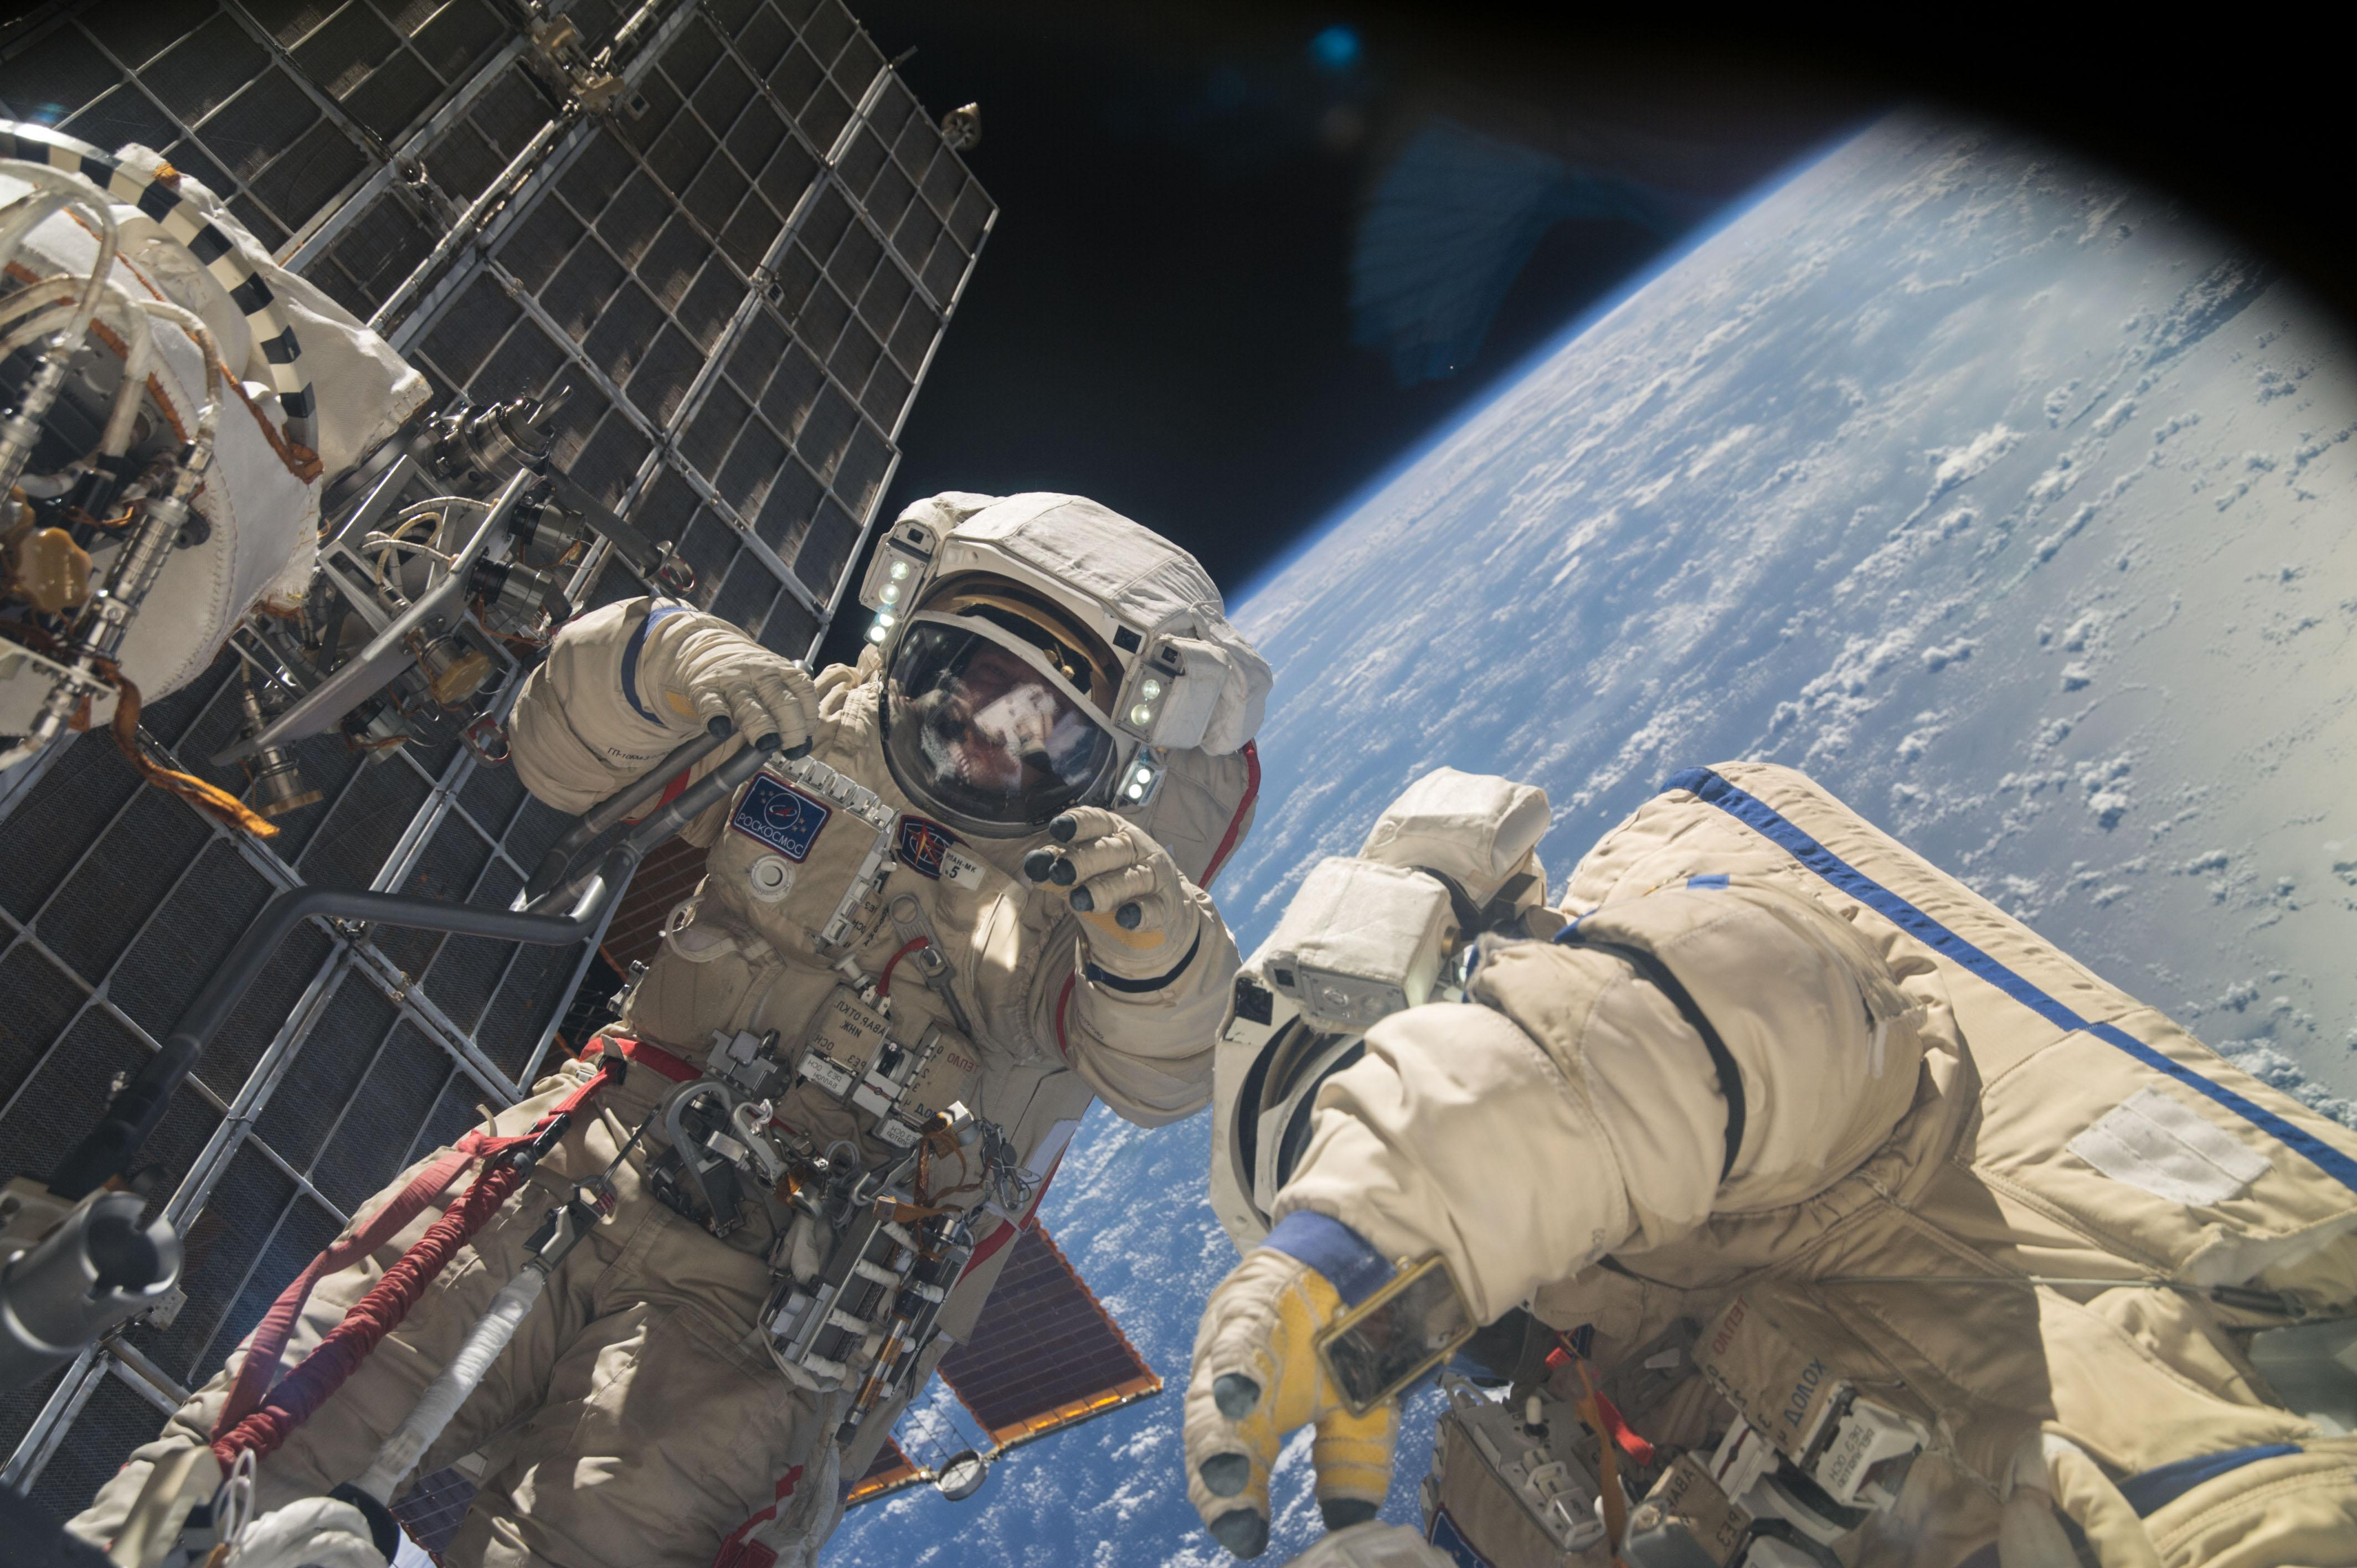 NASA Astronauts to Install Docking Adapter on ISS During Spacewalk on Wednesday